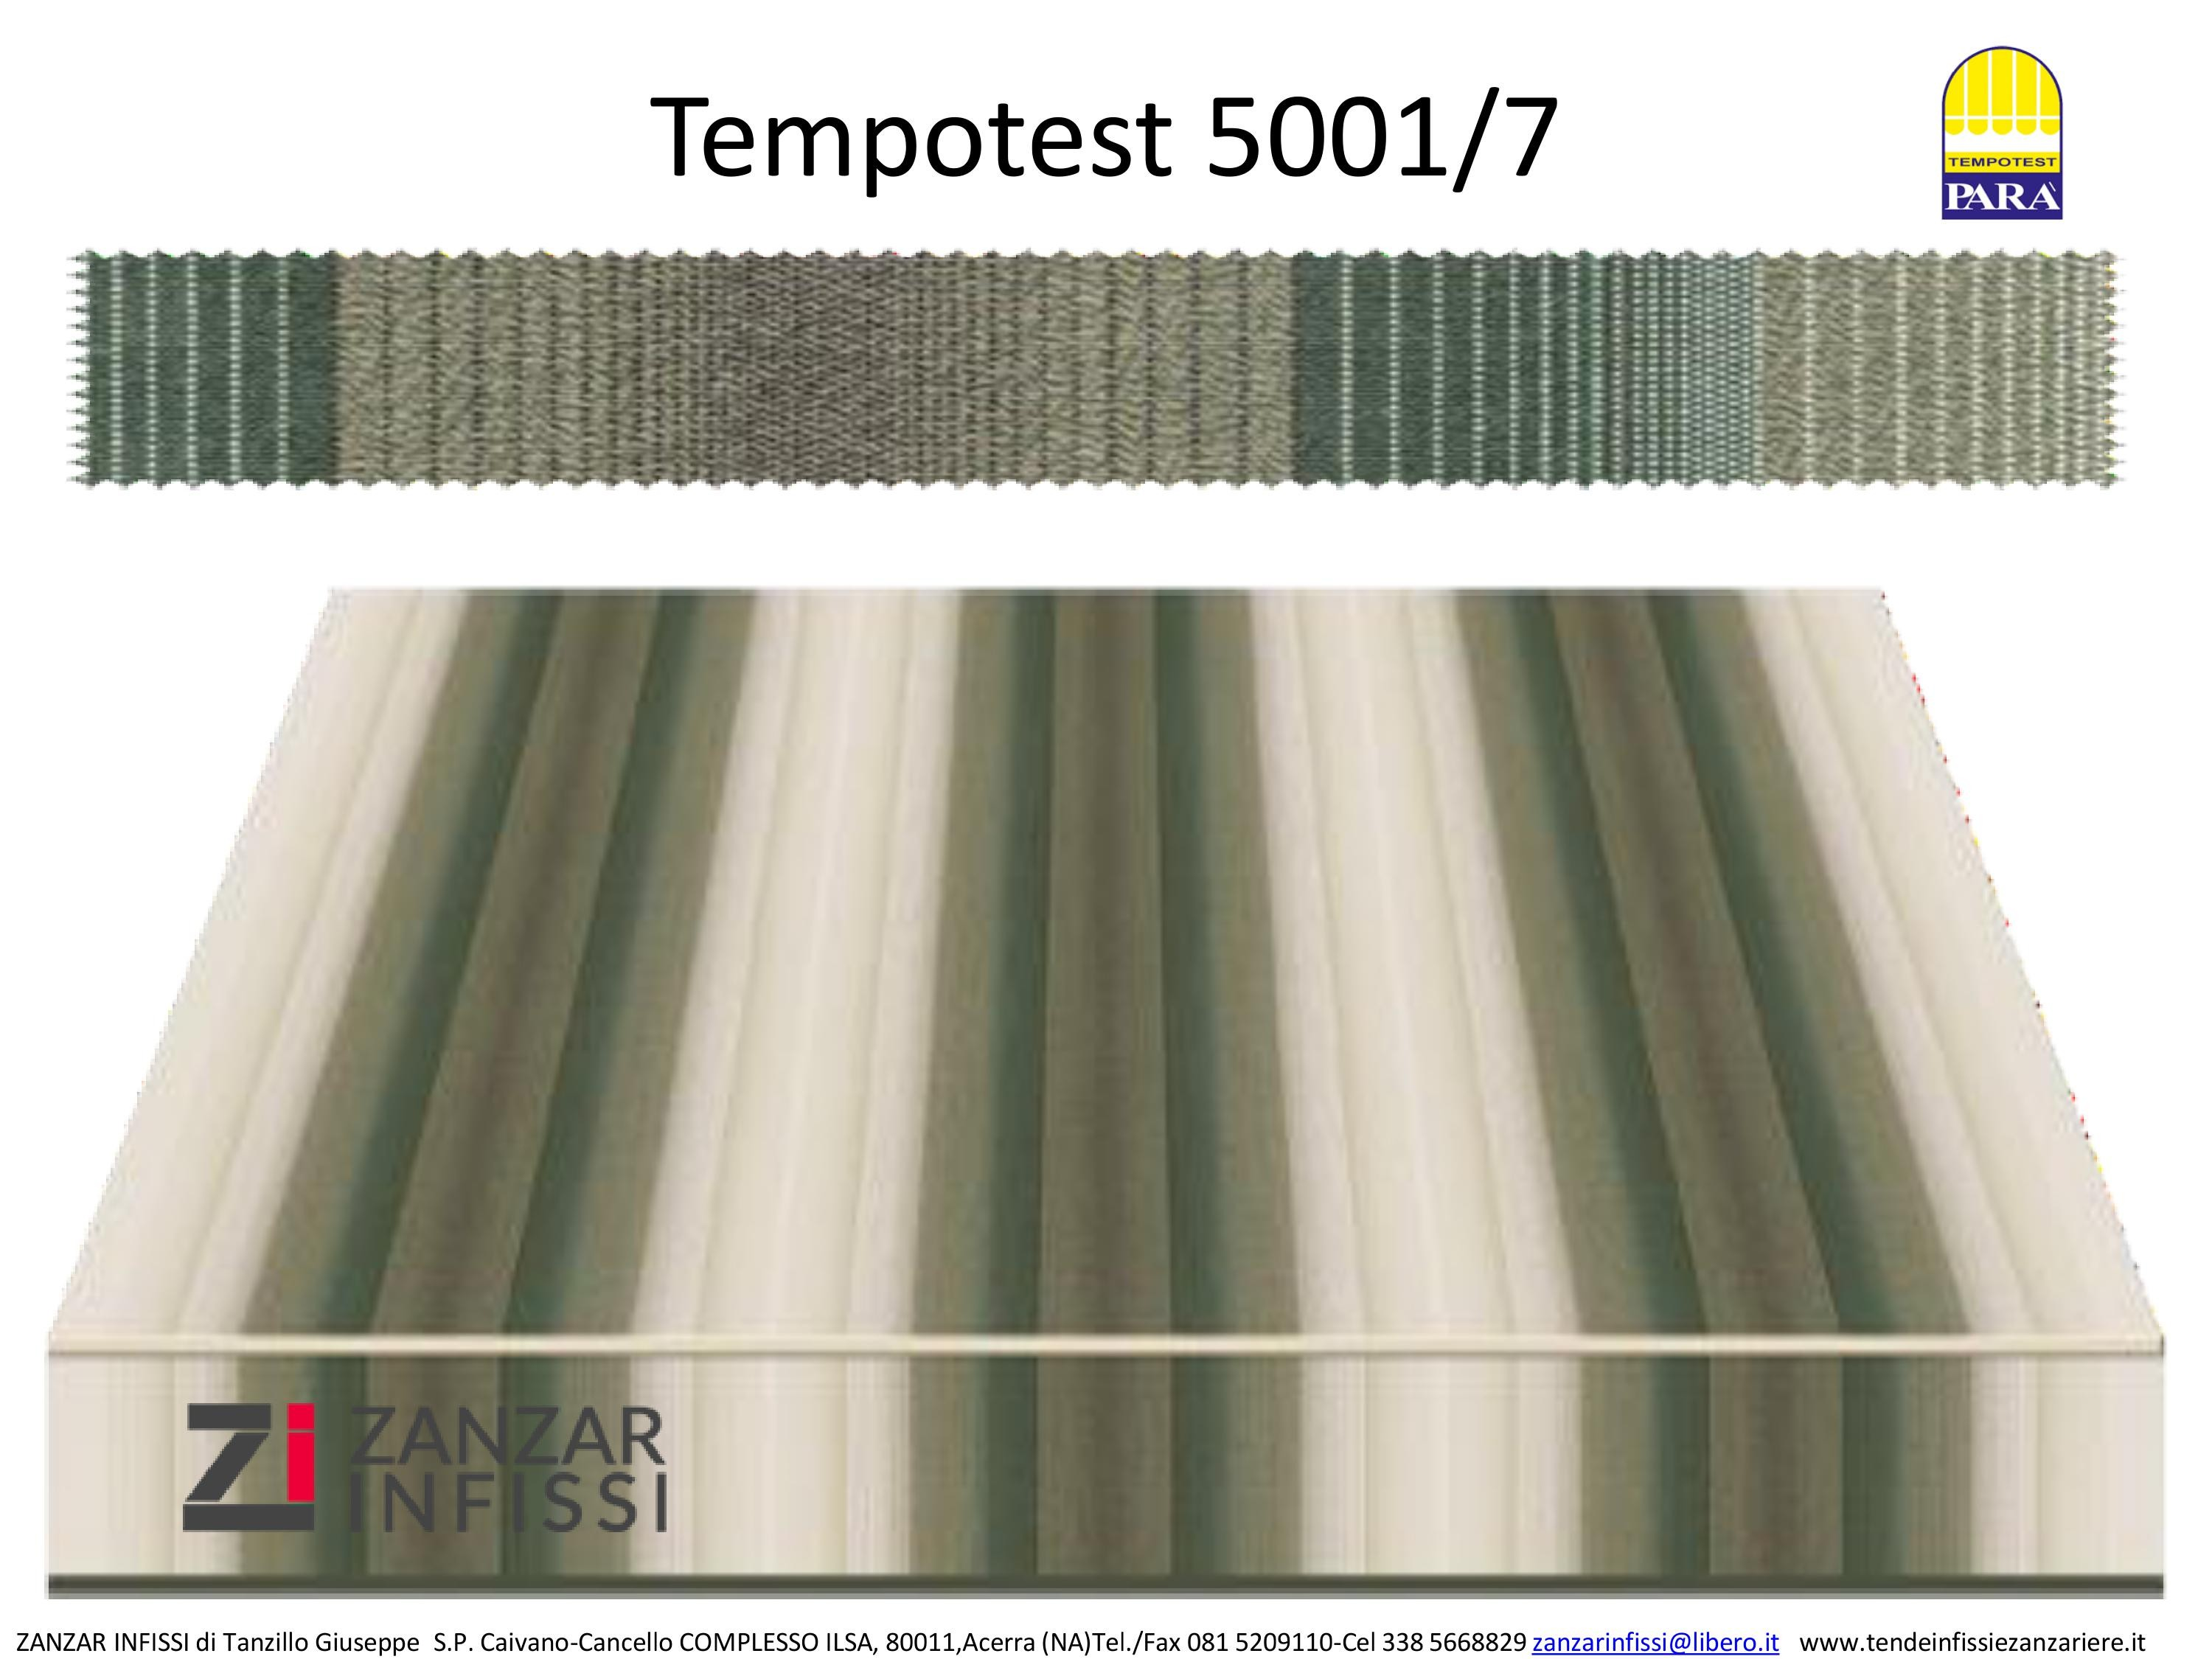 Tempotest 5001/7